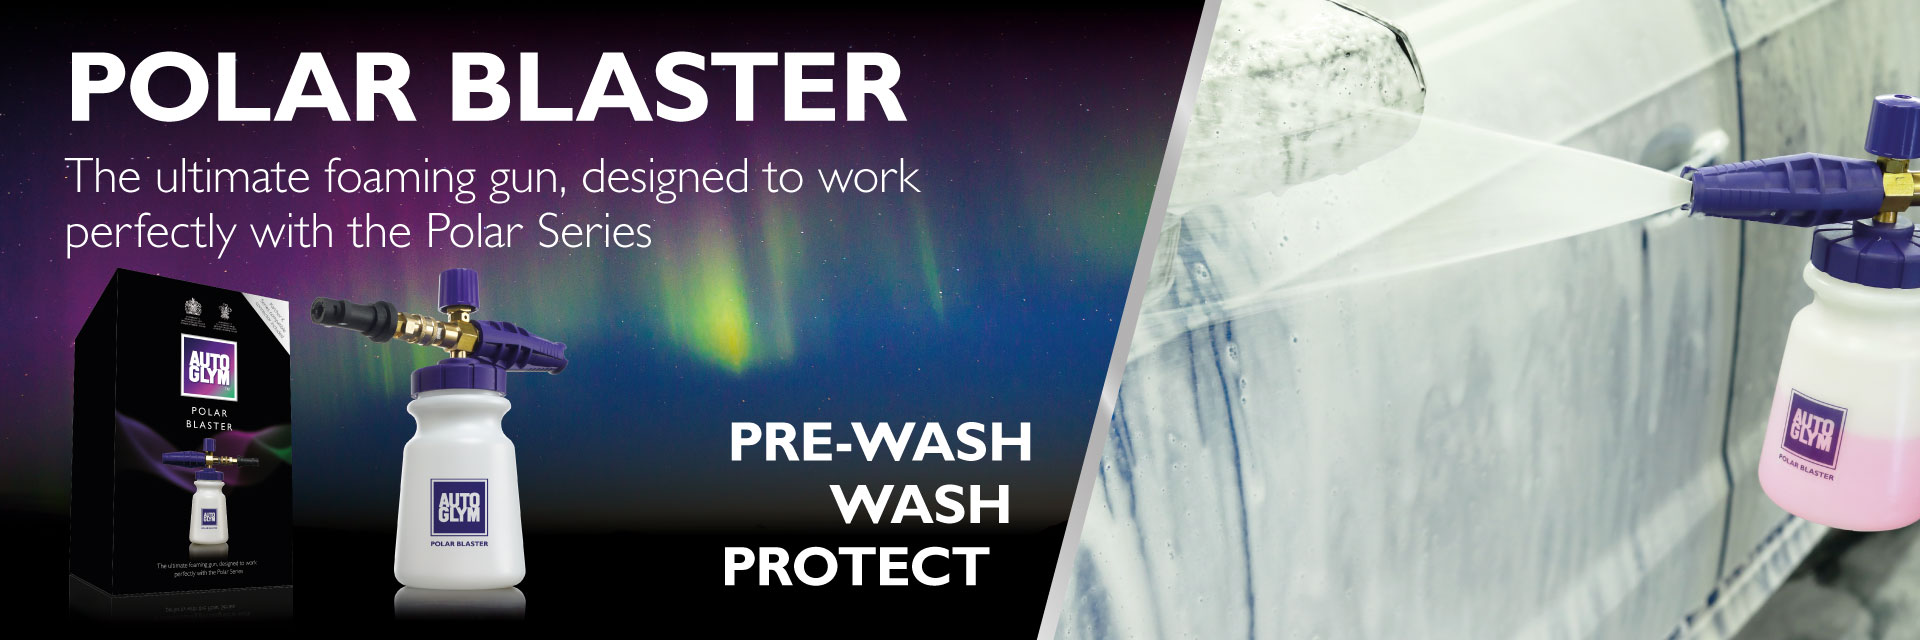 Pre-Wash, Wash, and Protect with the Autoglym Polar Blaster!